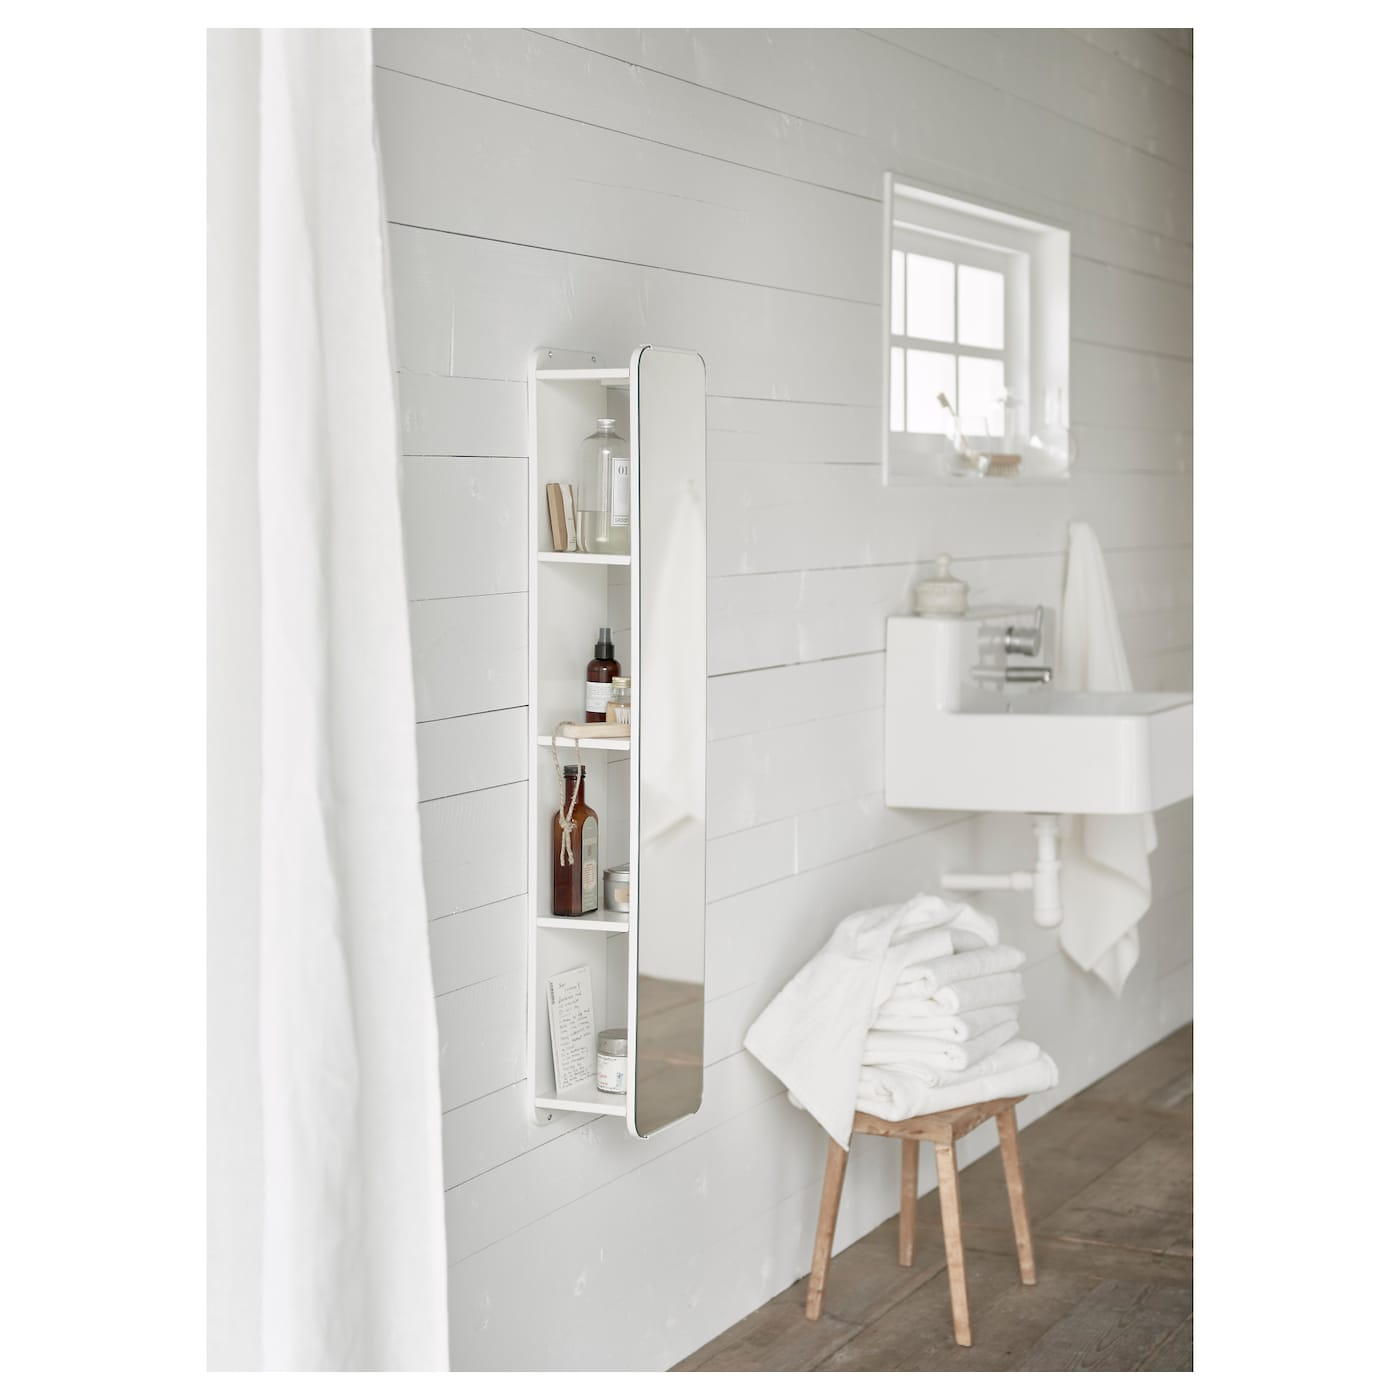 Wall Mirror With Storage brickan mirror with storage unit white 20x100 cm - ikea